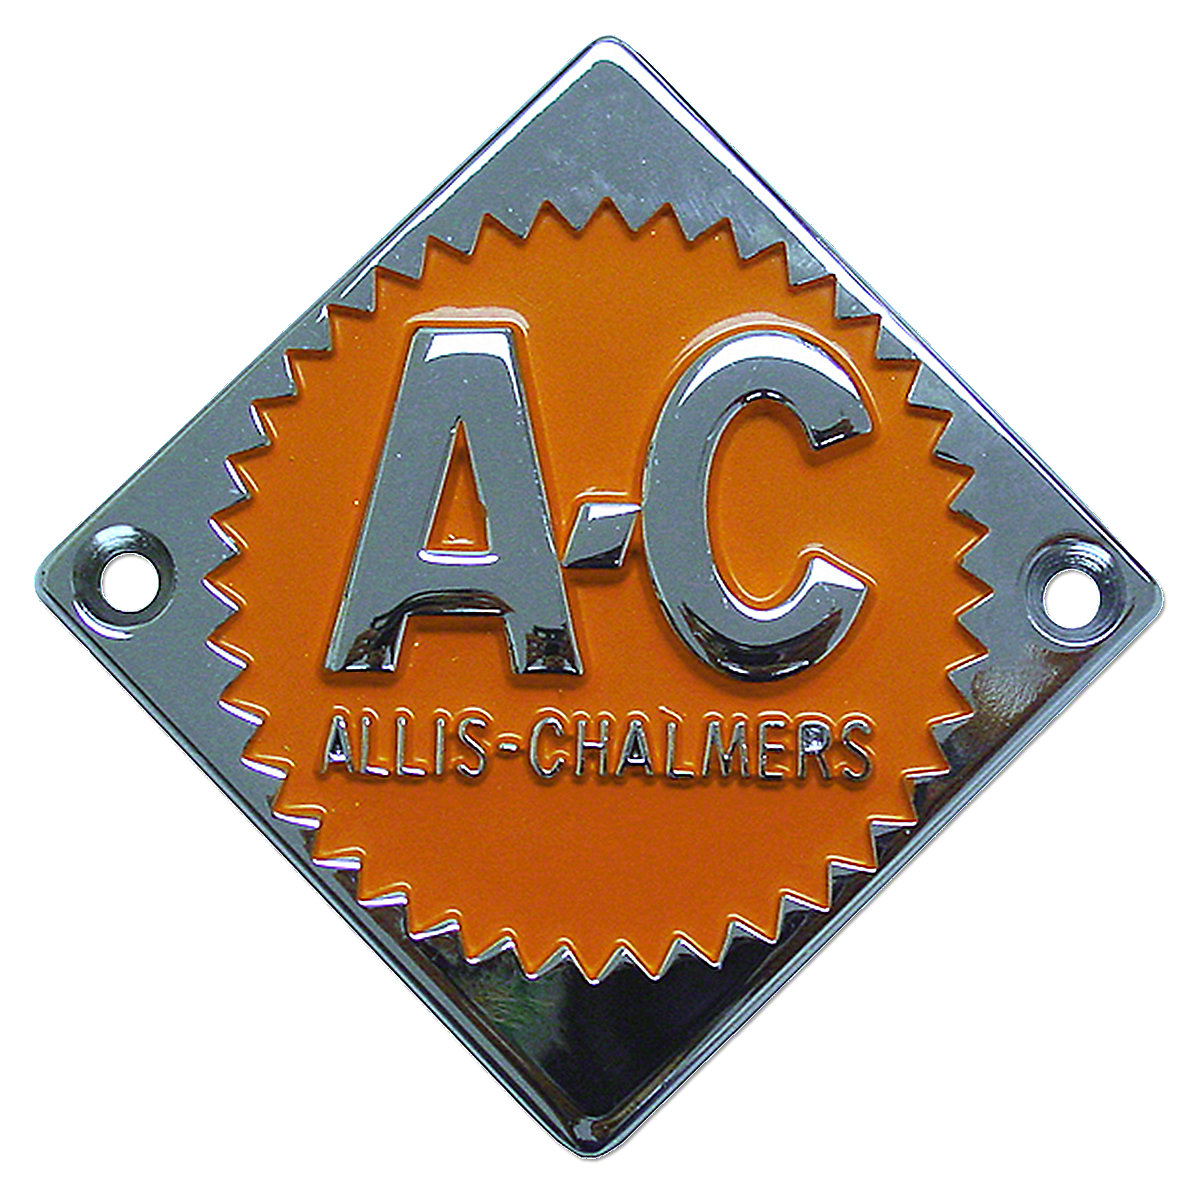 Steering Wheel Emblem For Allis Chalmers: D10, D12, D14, D17, I40, I400, I60.